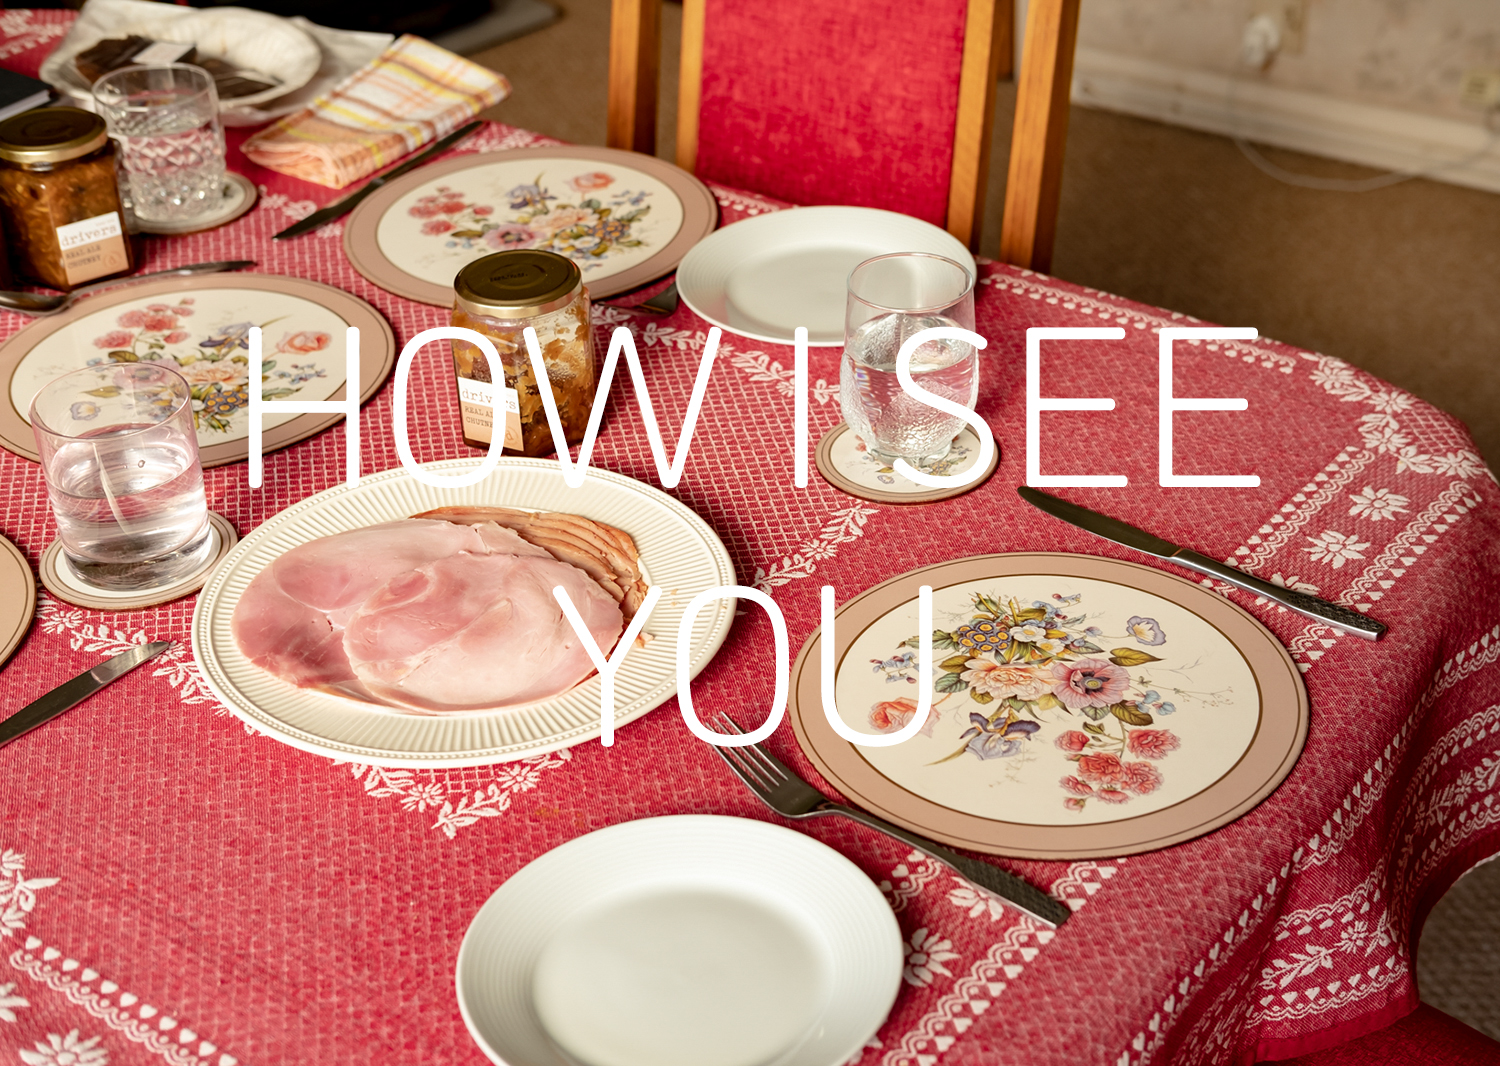 Graphic with a photograph of a table set for lunch with a pink tablecloth, plate of ham, a floral placemat, cutlery, a jar of chutney and glasses of water. Text in white in the middle says 'HOW I SEE YOU'